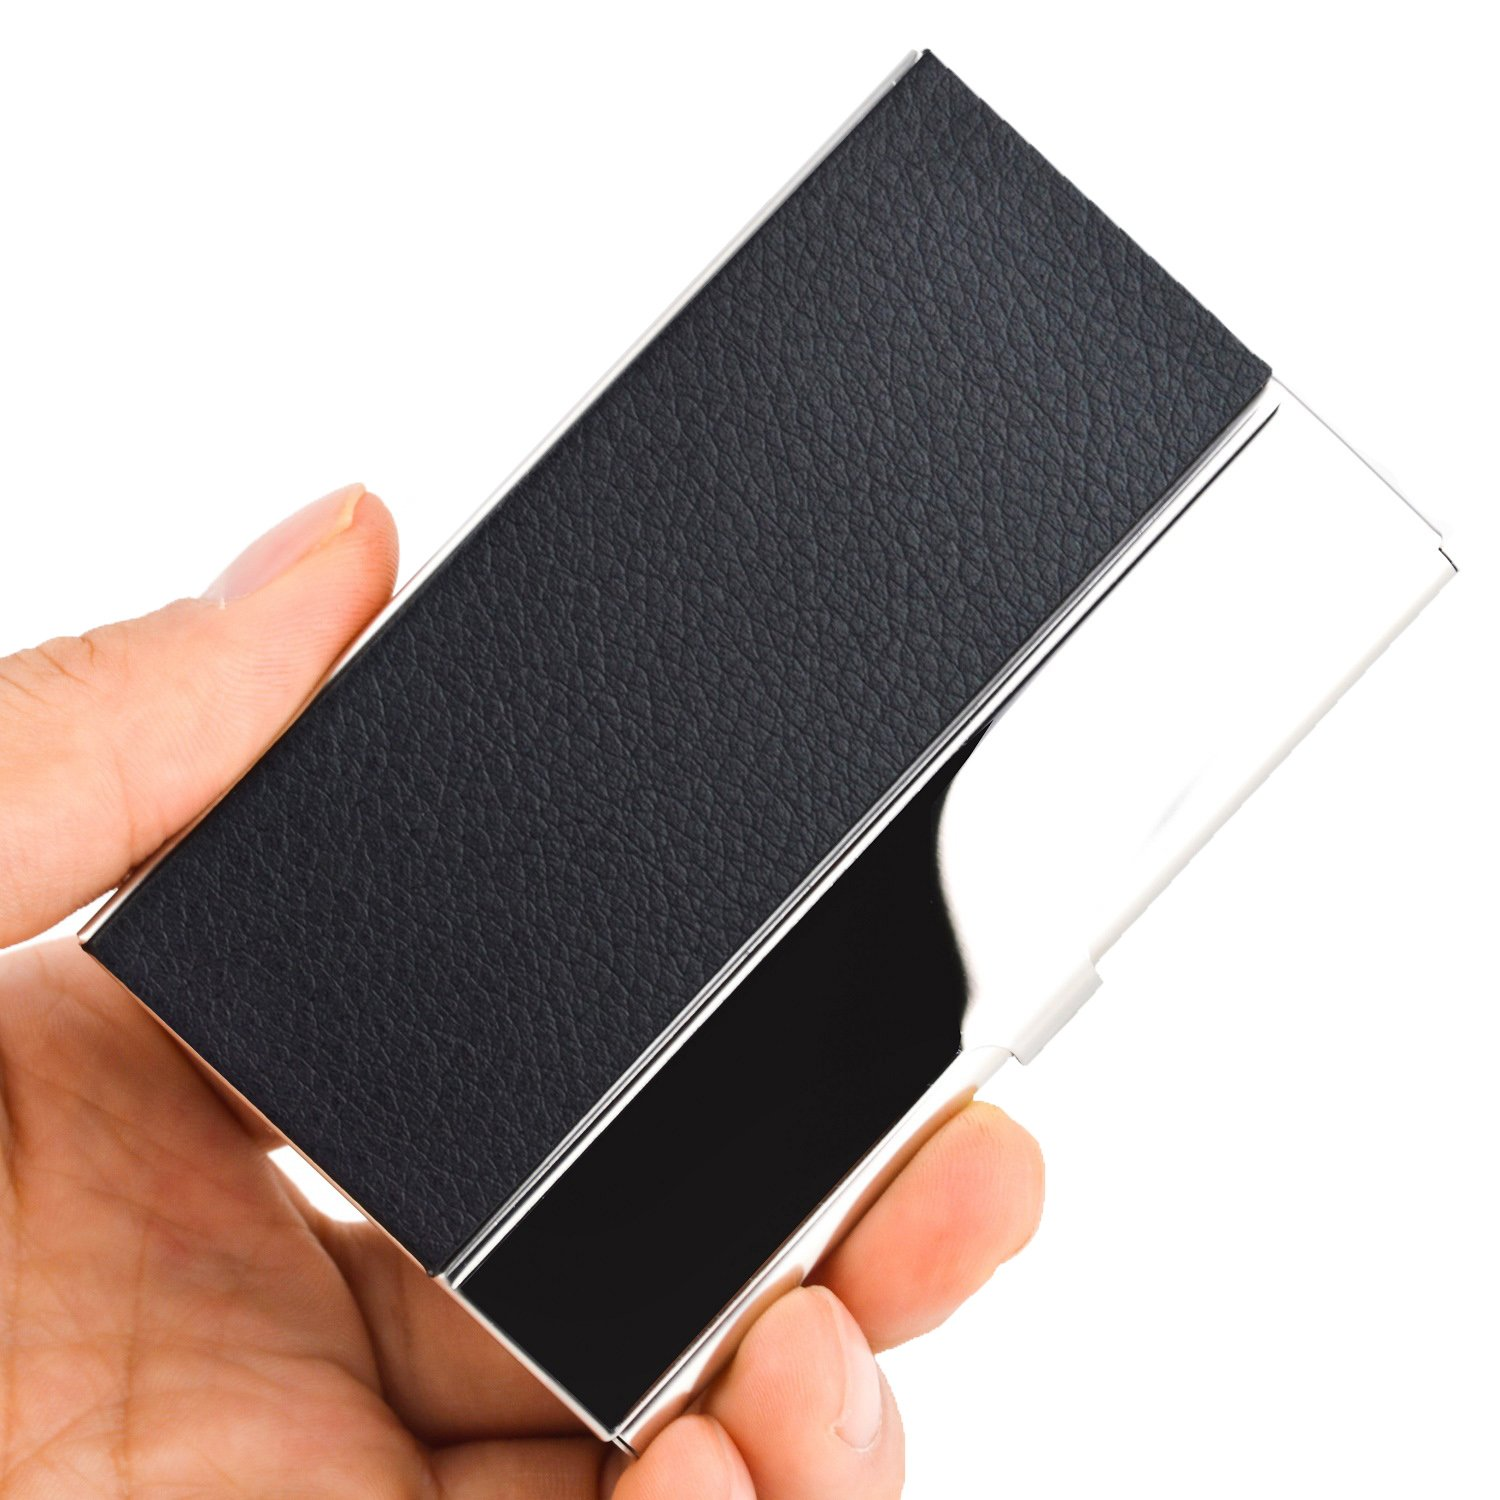 MaxGear Business Card Holders Business Card Case Stainless Steel Card Holder Metal Card Organizer Keep Business Cards in Immaculate Condition Clemence Black